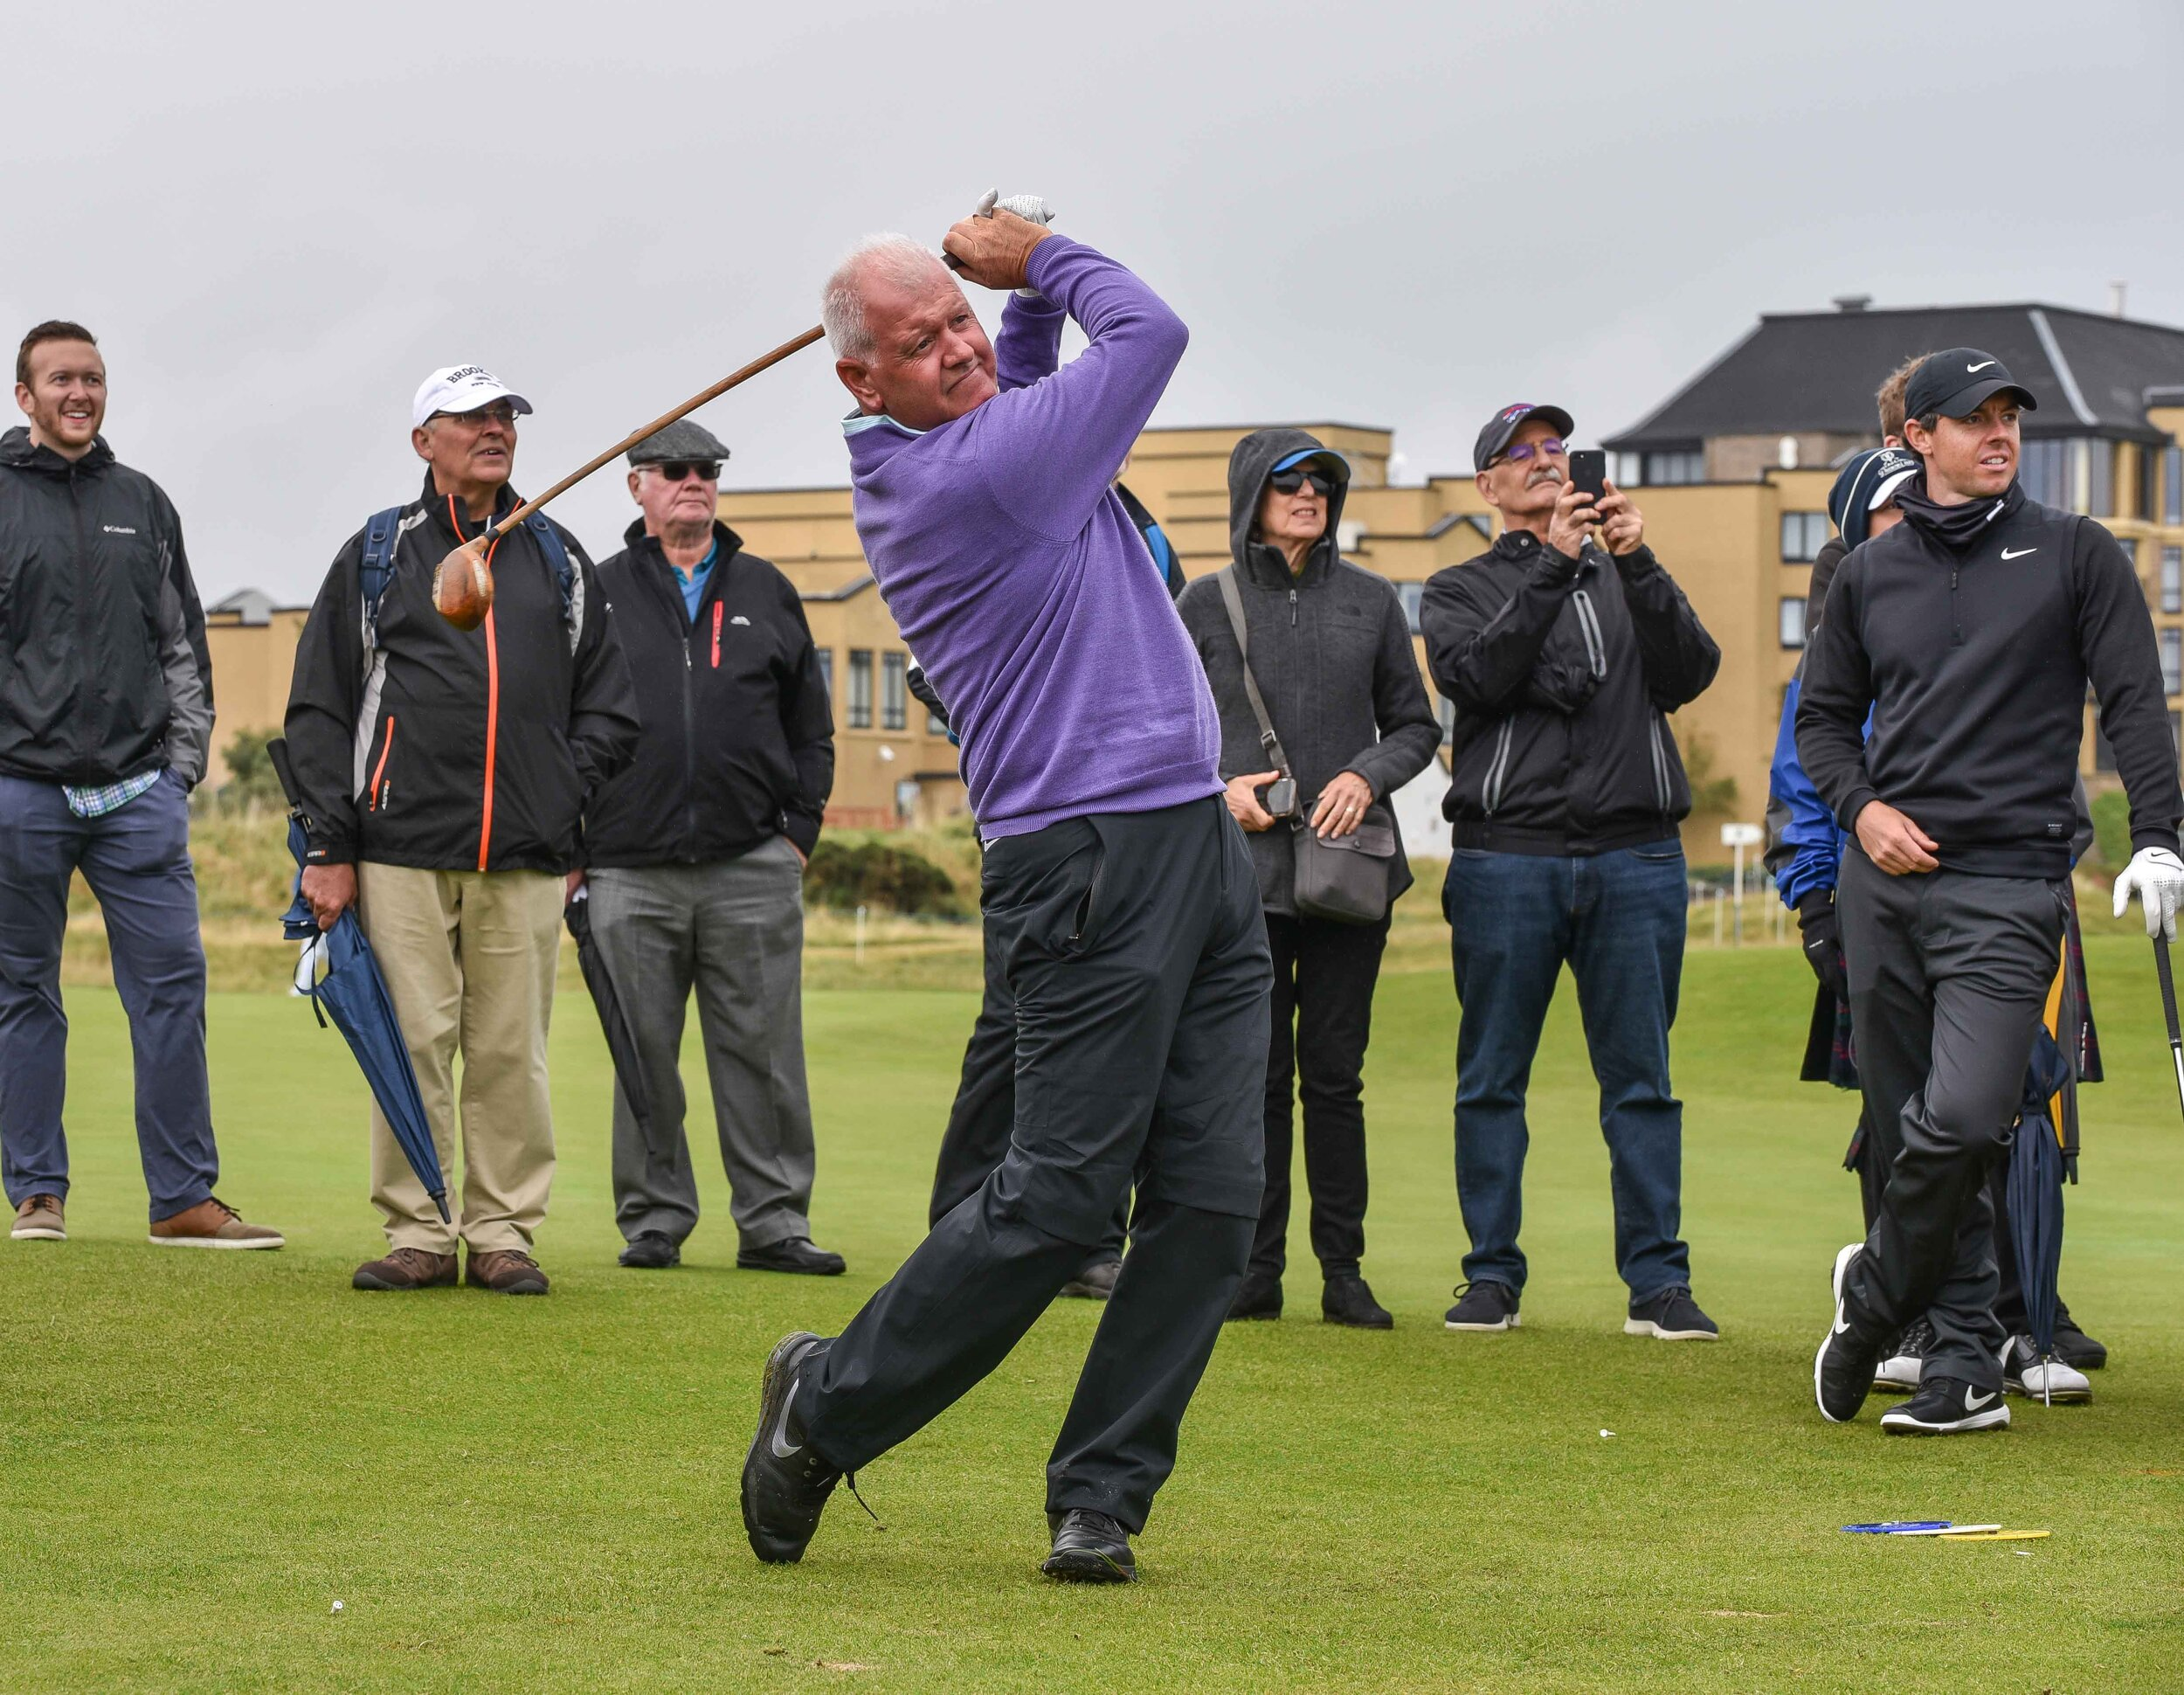 Gerry McIlroy hammers a hickory driver on the 18th hole at St Andrews. The Dunhill folks set out some of the old school clubs for the pros to try.